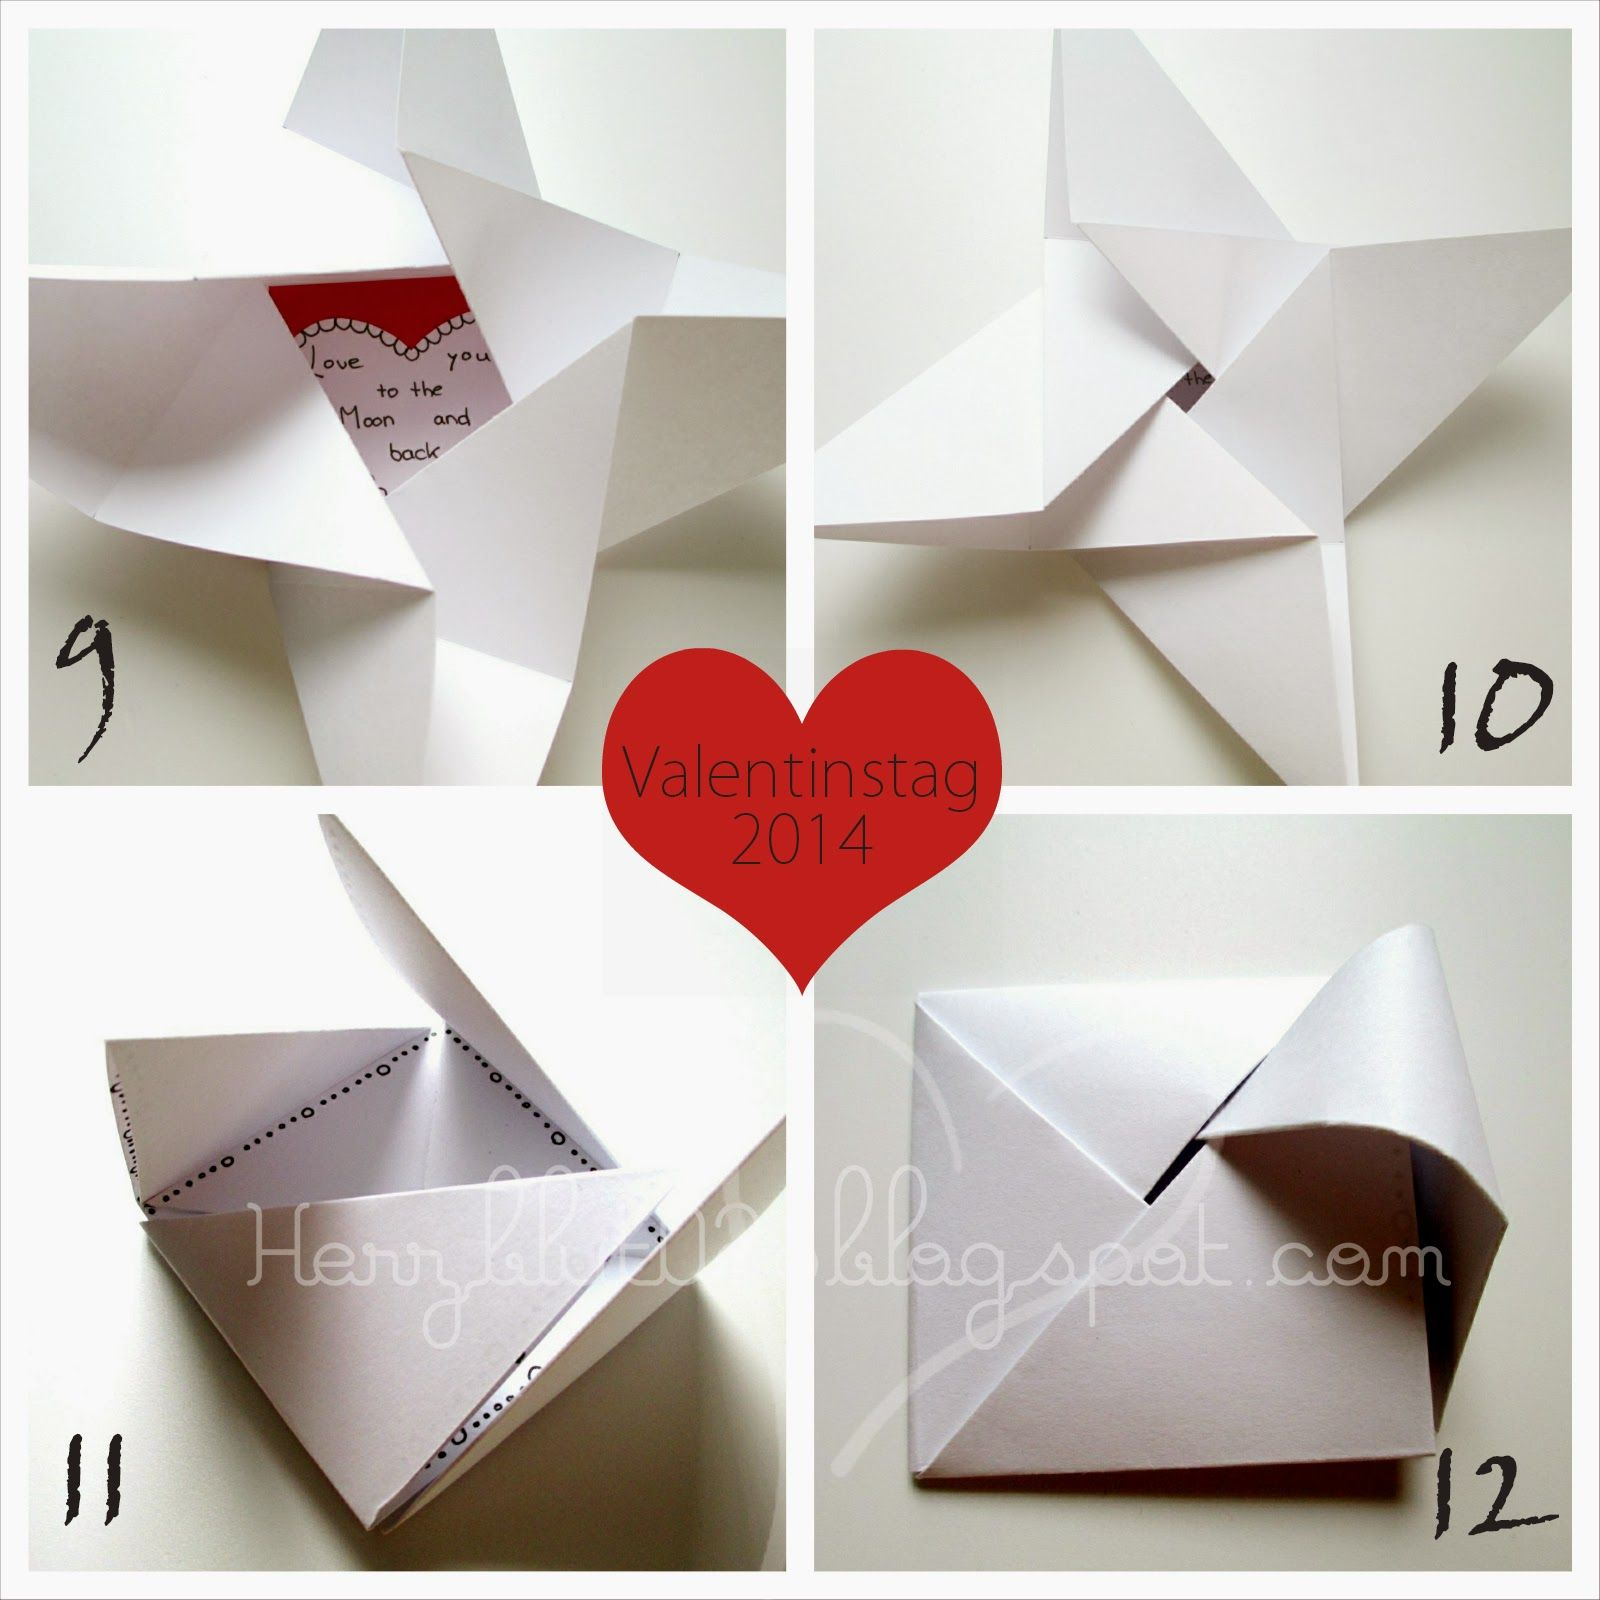 herzblut ein diy blog origami karte zum valentinstag folding pinterest zum valentinstag. Black Bedroom Furniture Sets. Home Design Ideas